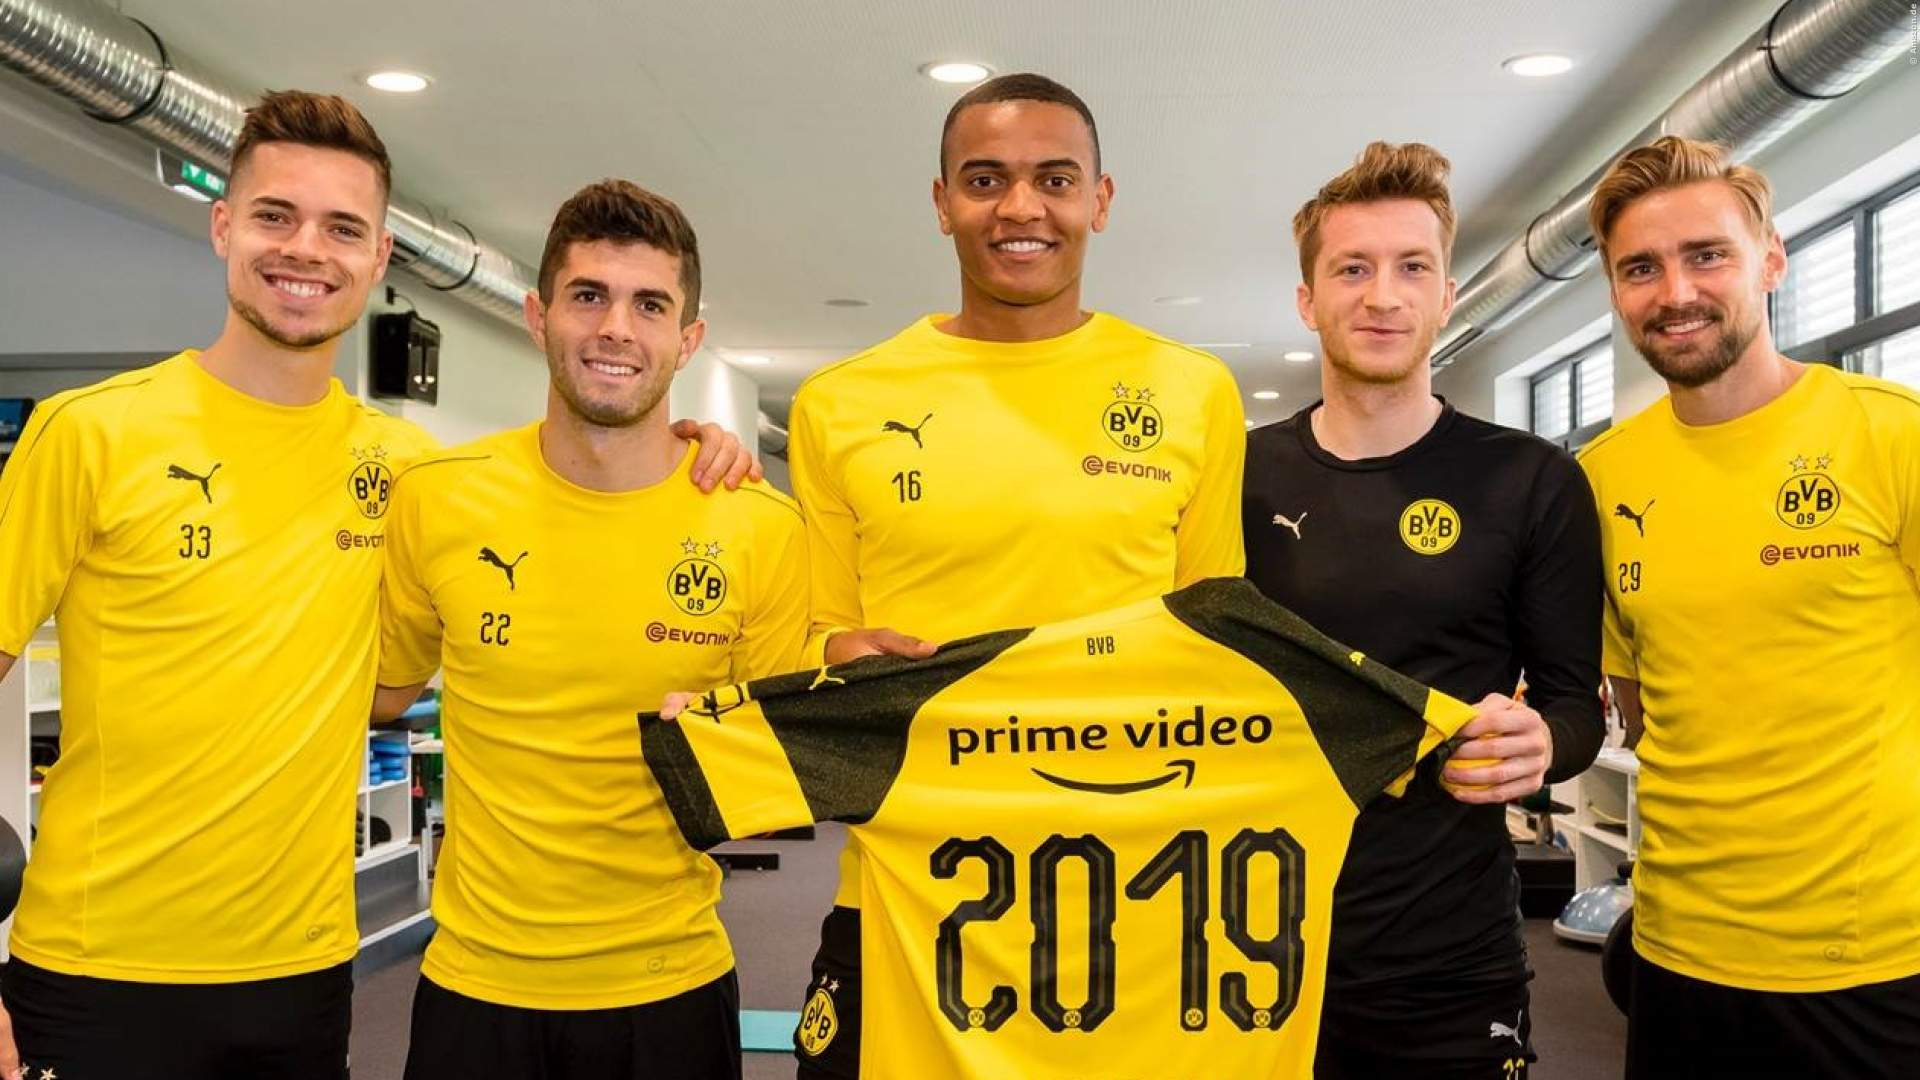 BVB-Sport-Doku-Serie exklusiv bei Amazon Prime Video